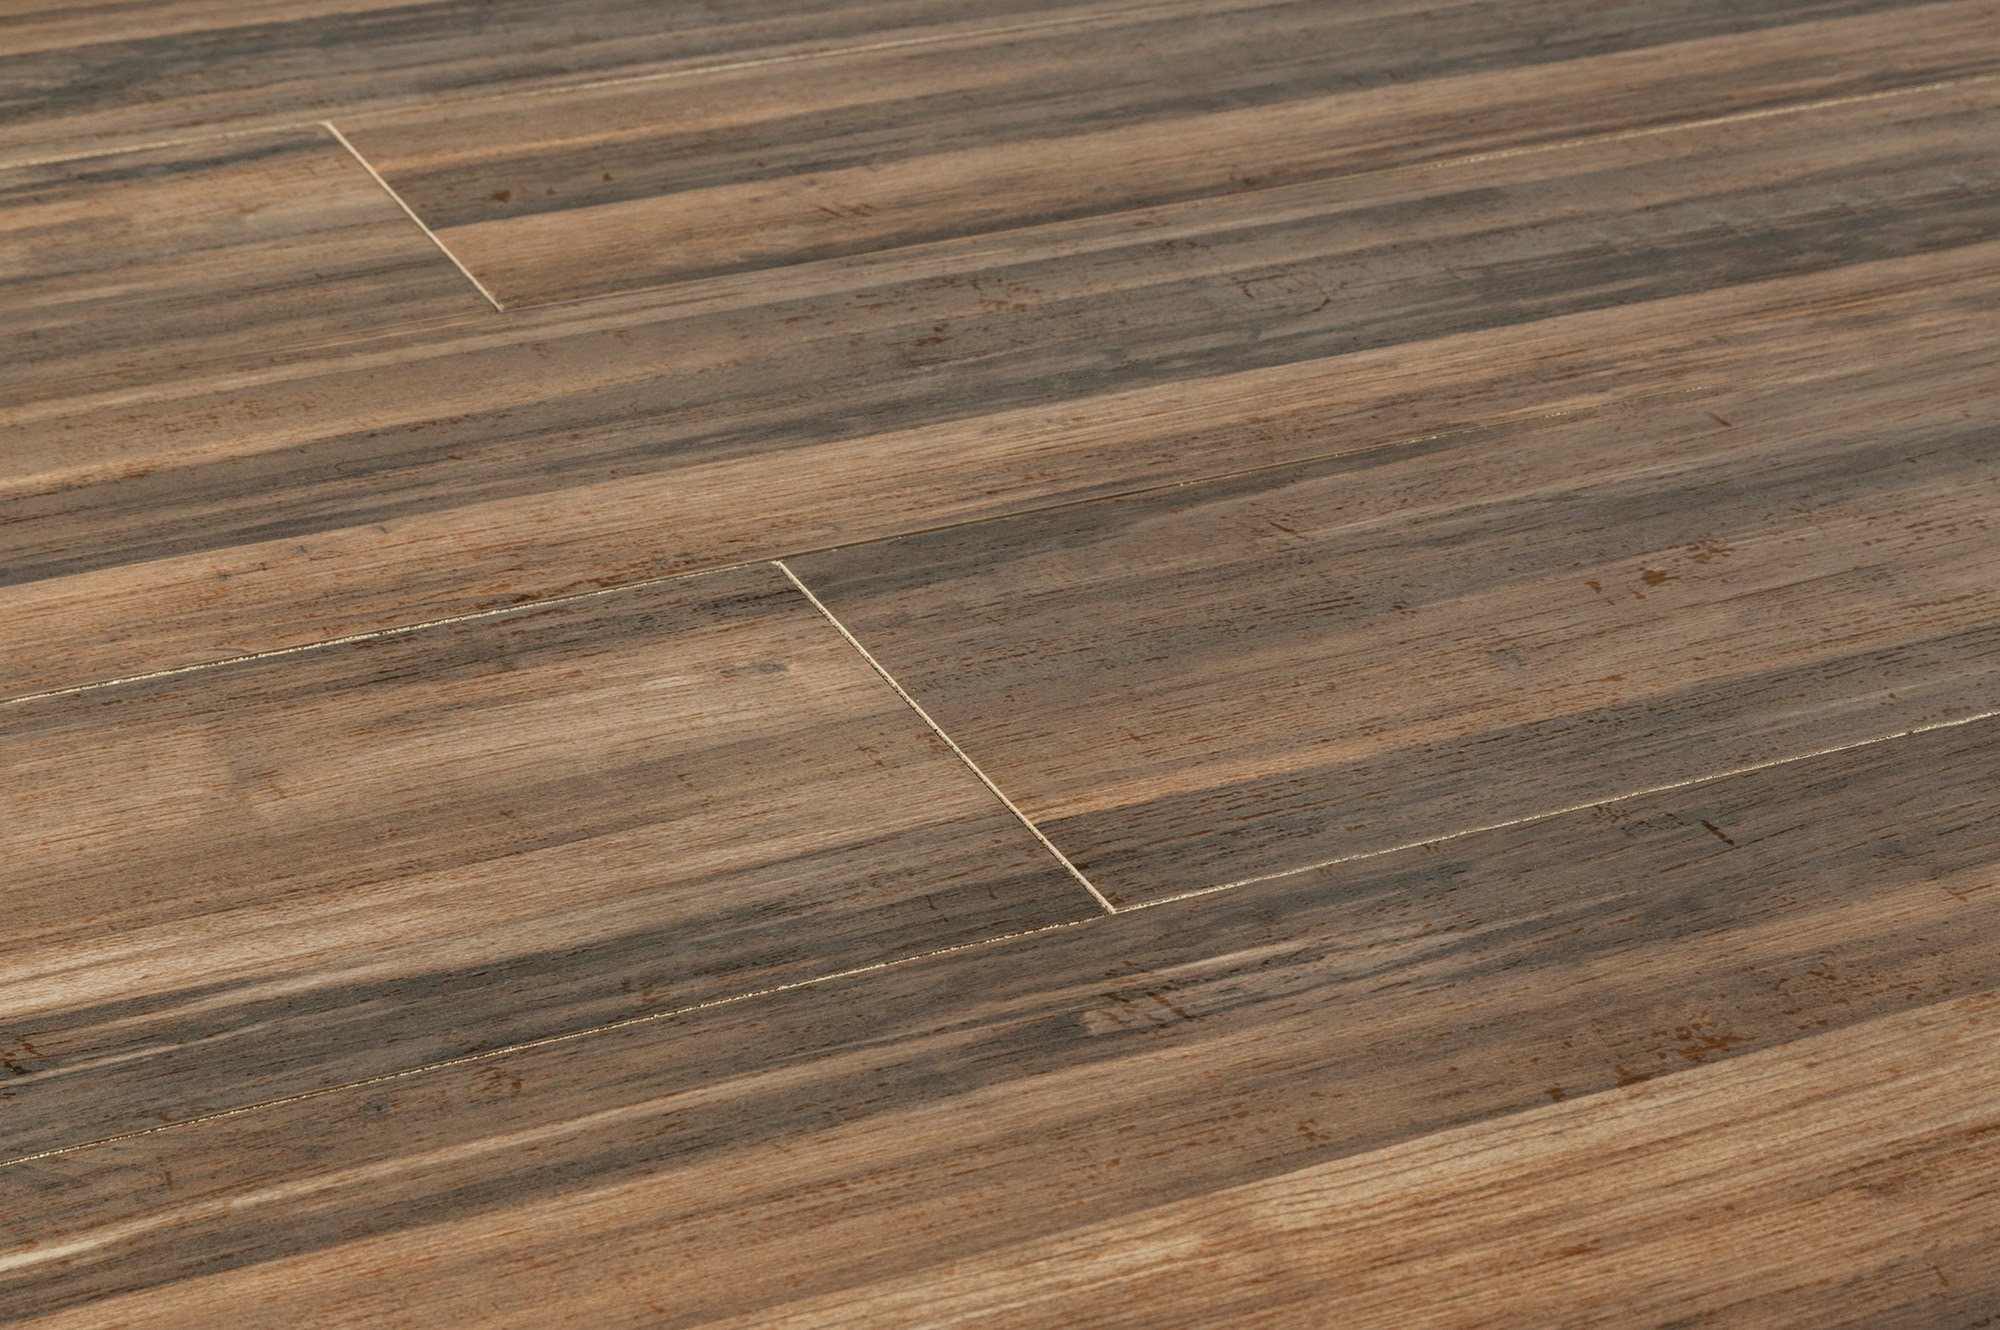 Torino Porcelain Tile Eroded Wood Plank Collection Made In Spain Weathered 8 X45 Matte